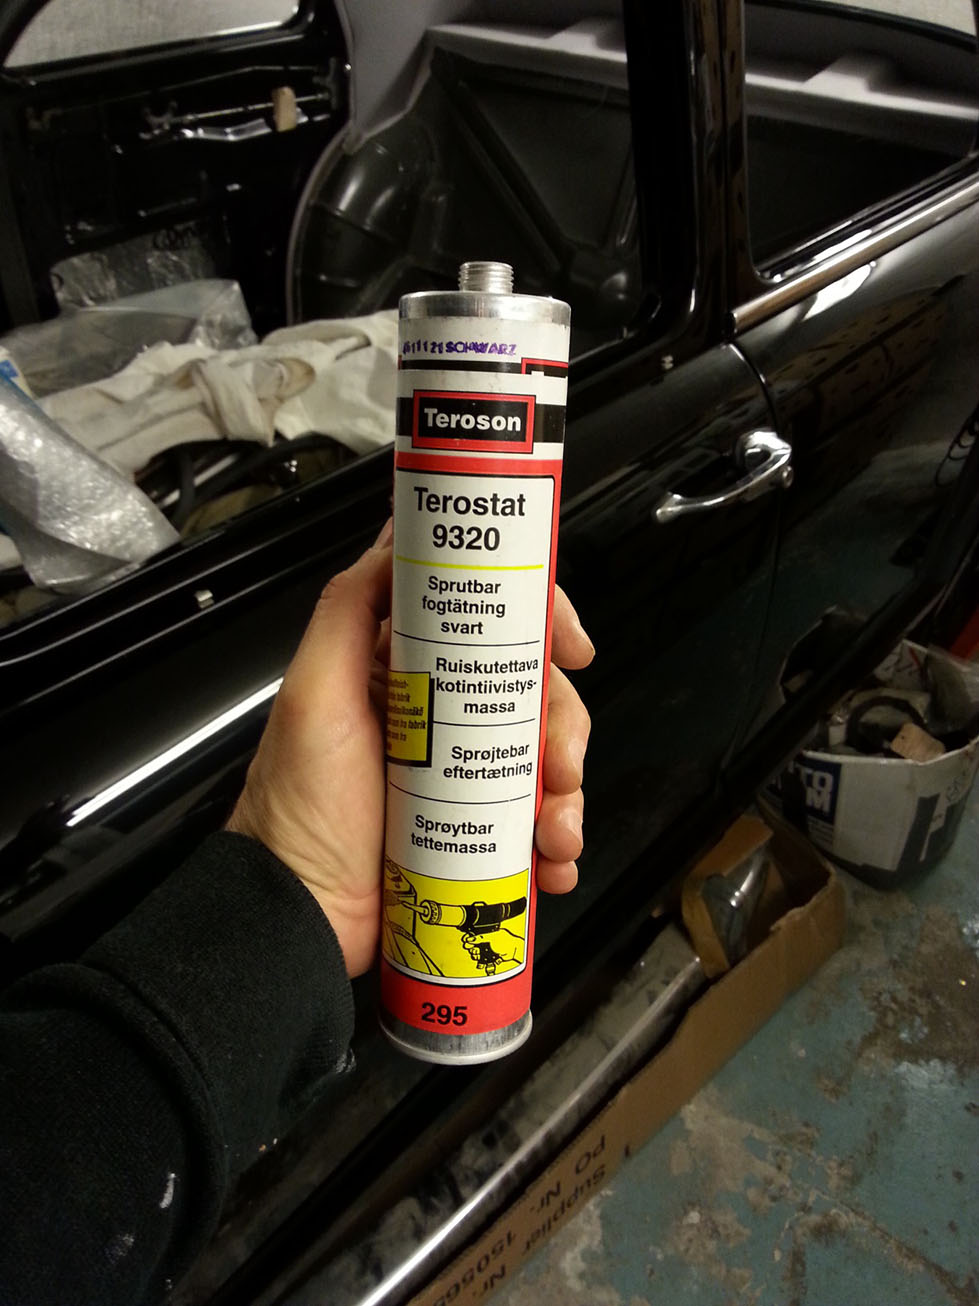 Mercedes Benz 219 Restoration Chassis Thinner Spies Hecker 1 Liter Teroson 9320 For Sealing And Sound Proofing